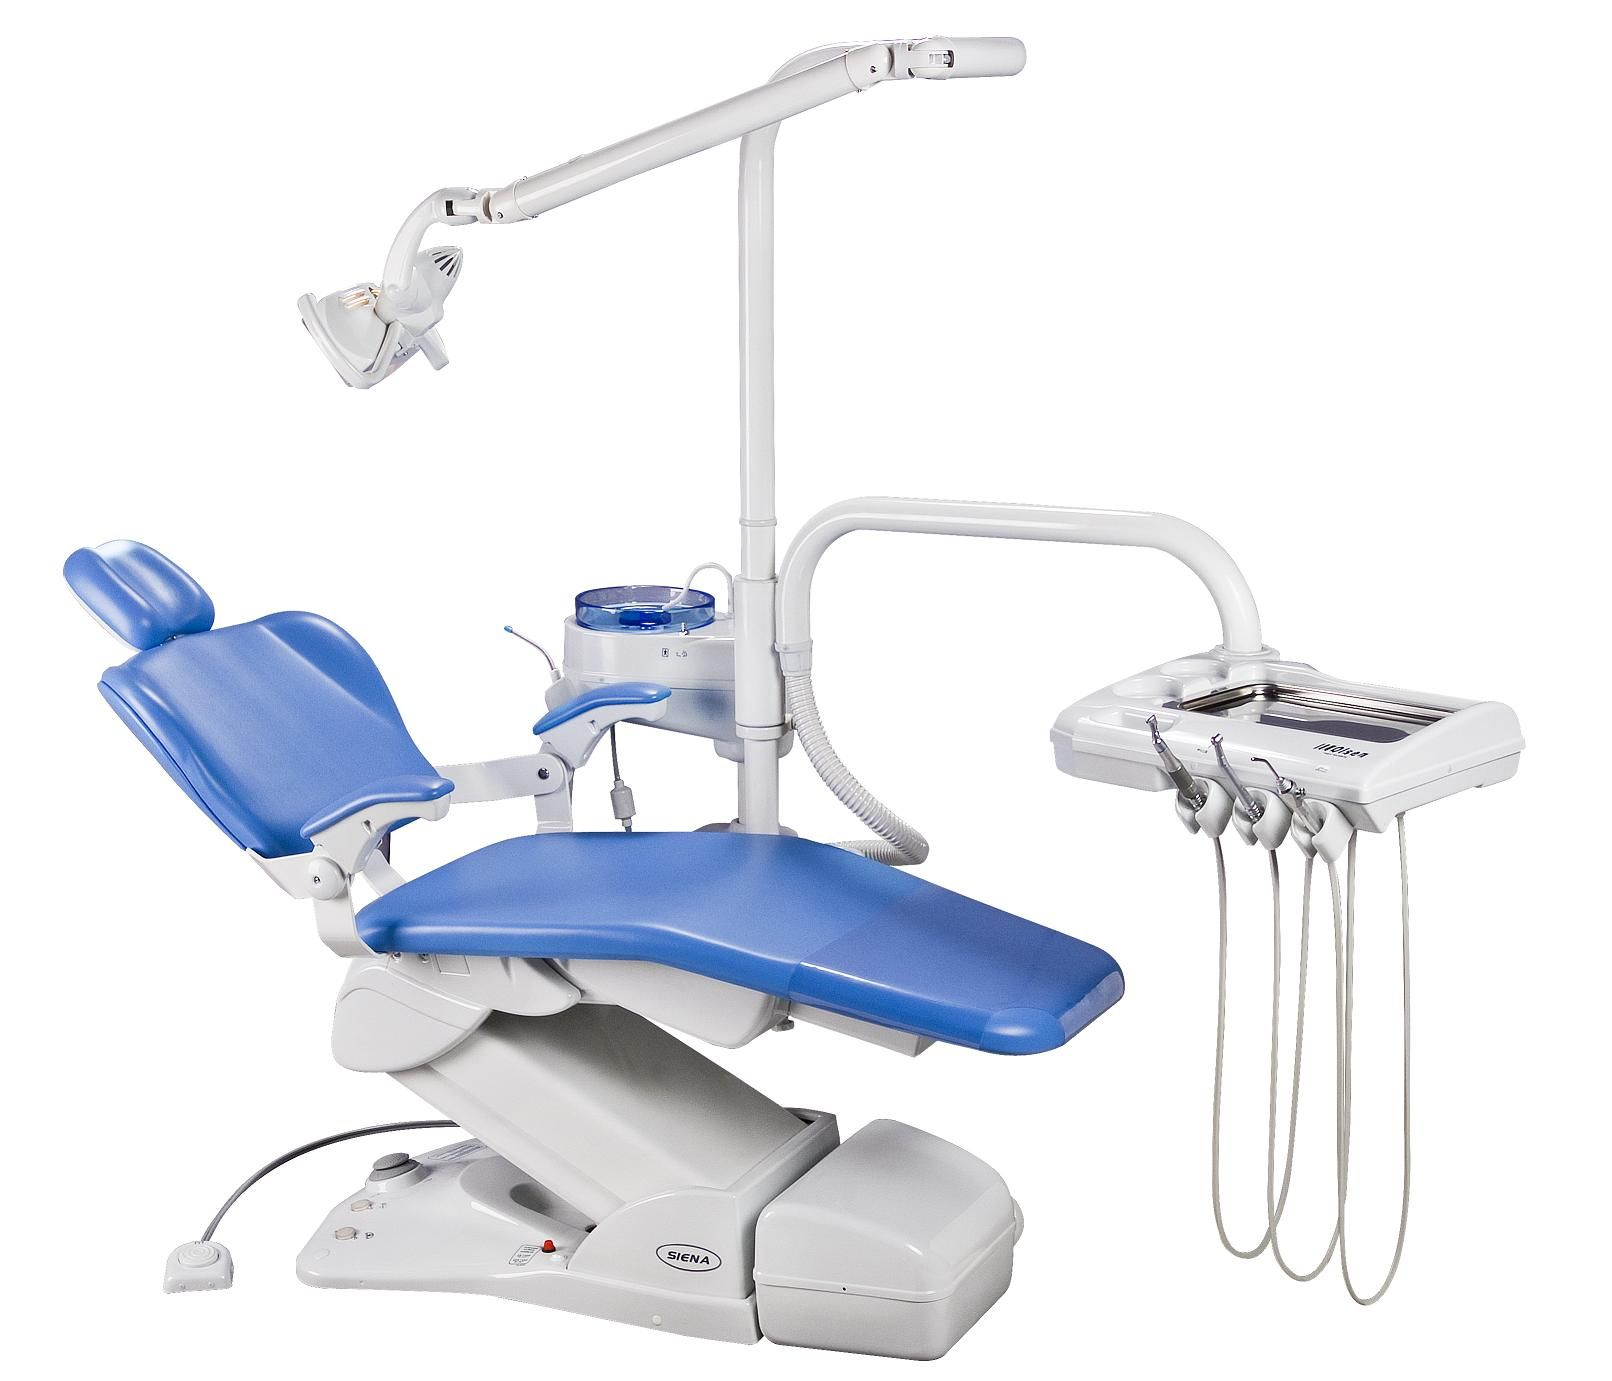 Frugal Dental Chair Online India And Assistant Jobs Johannesburg